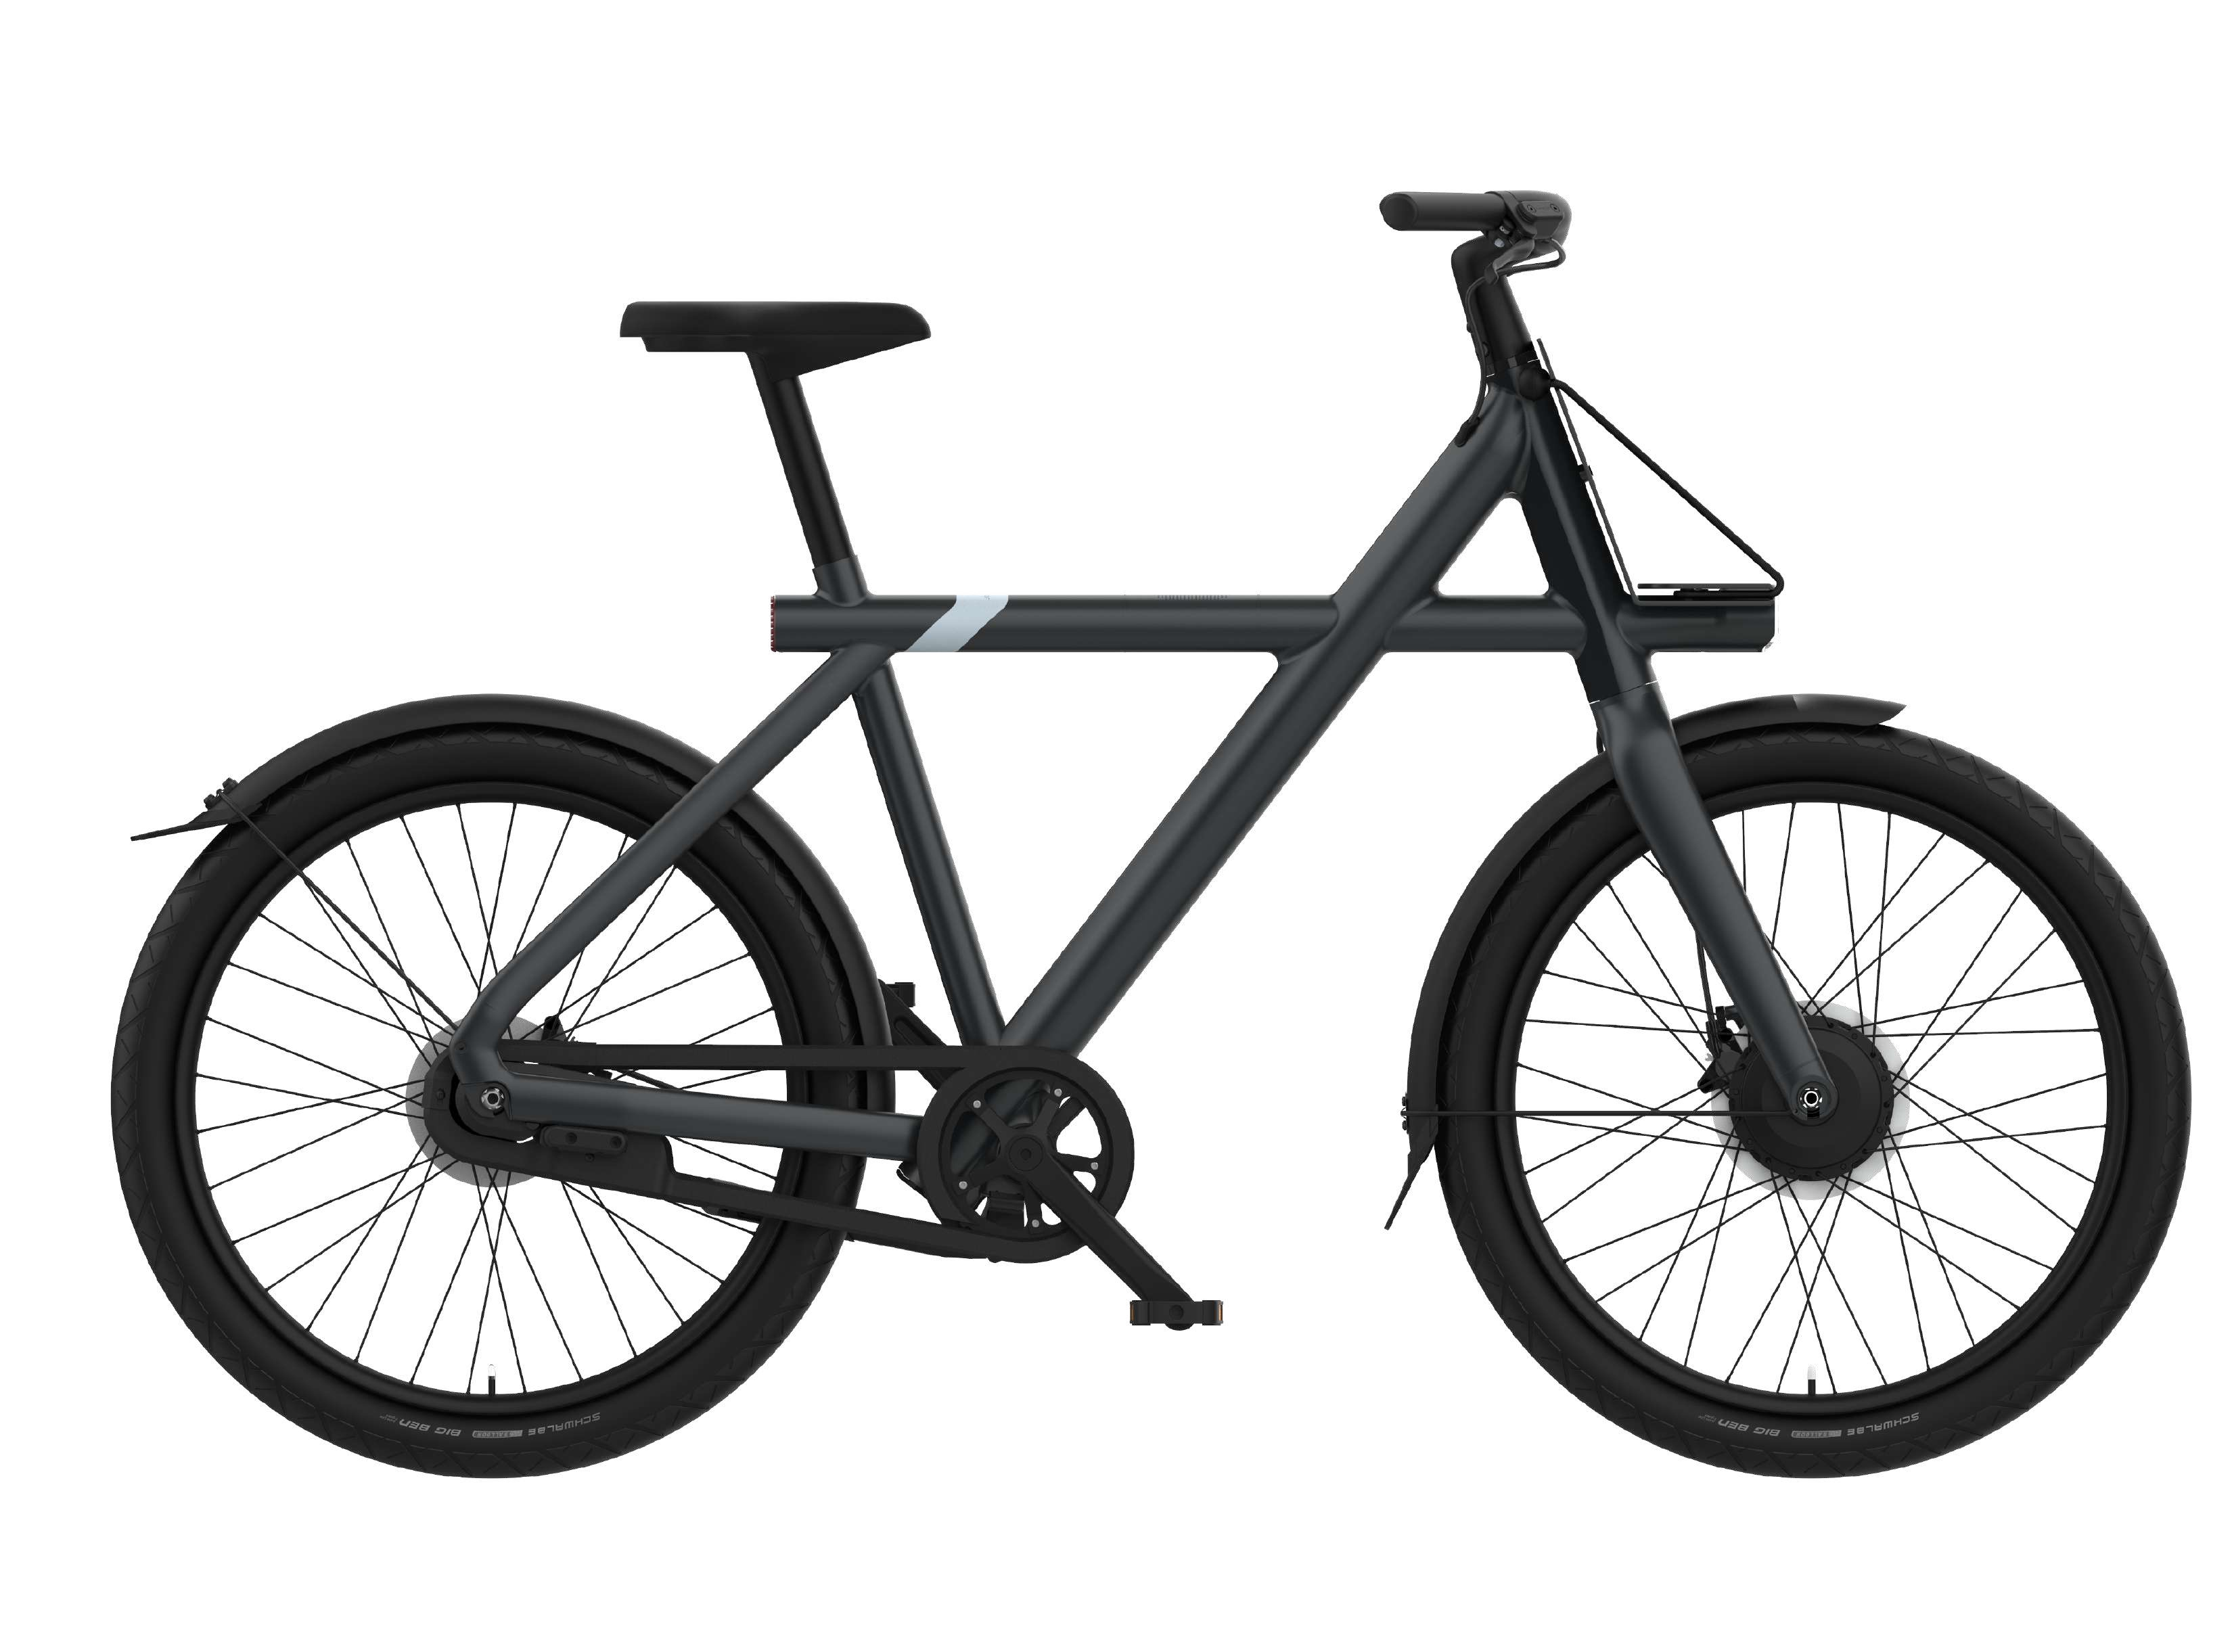 VanMoof introduces new S3 and X3 electric bikes 3